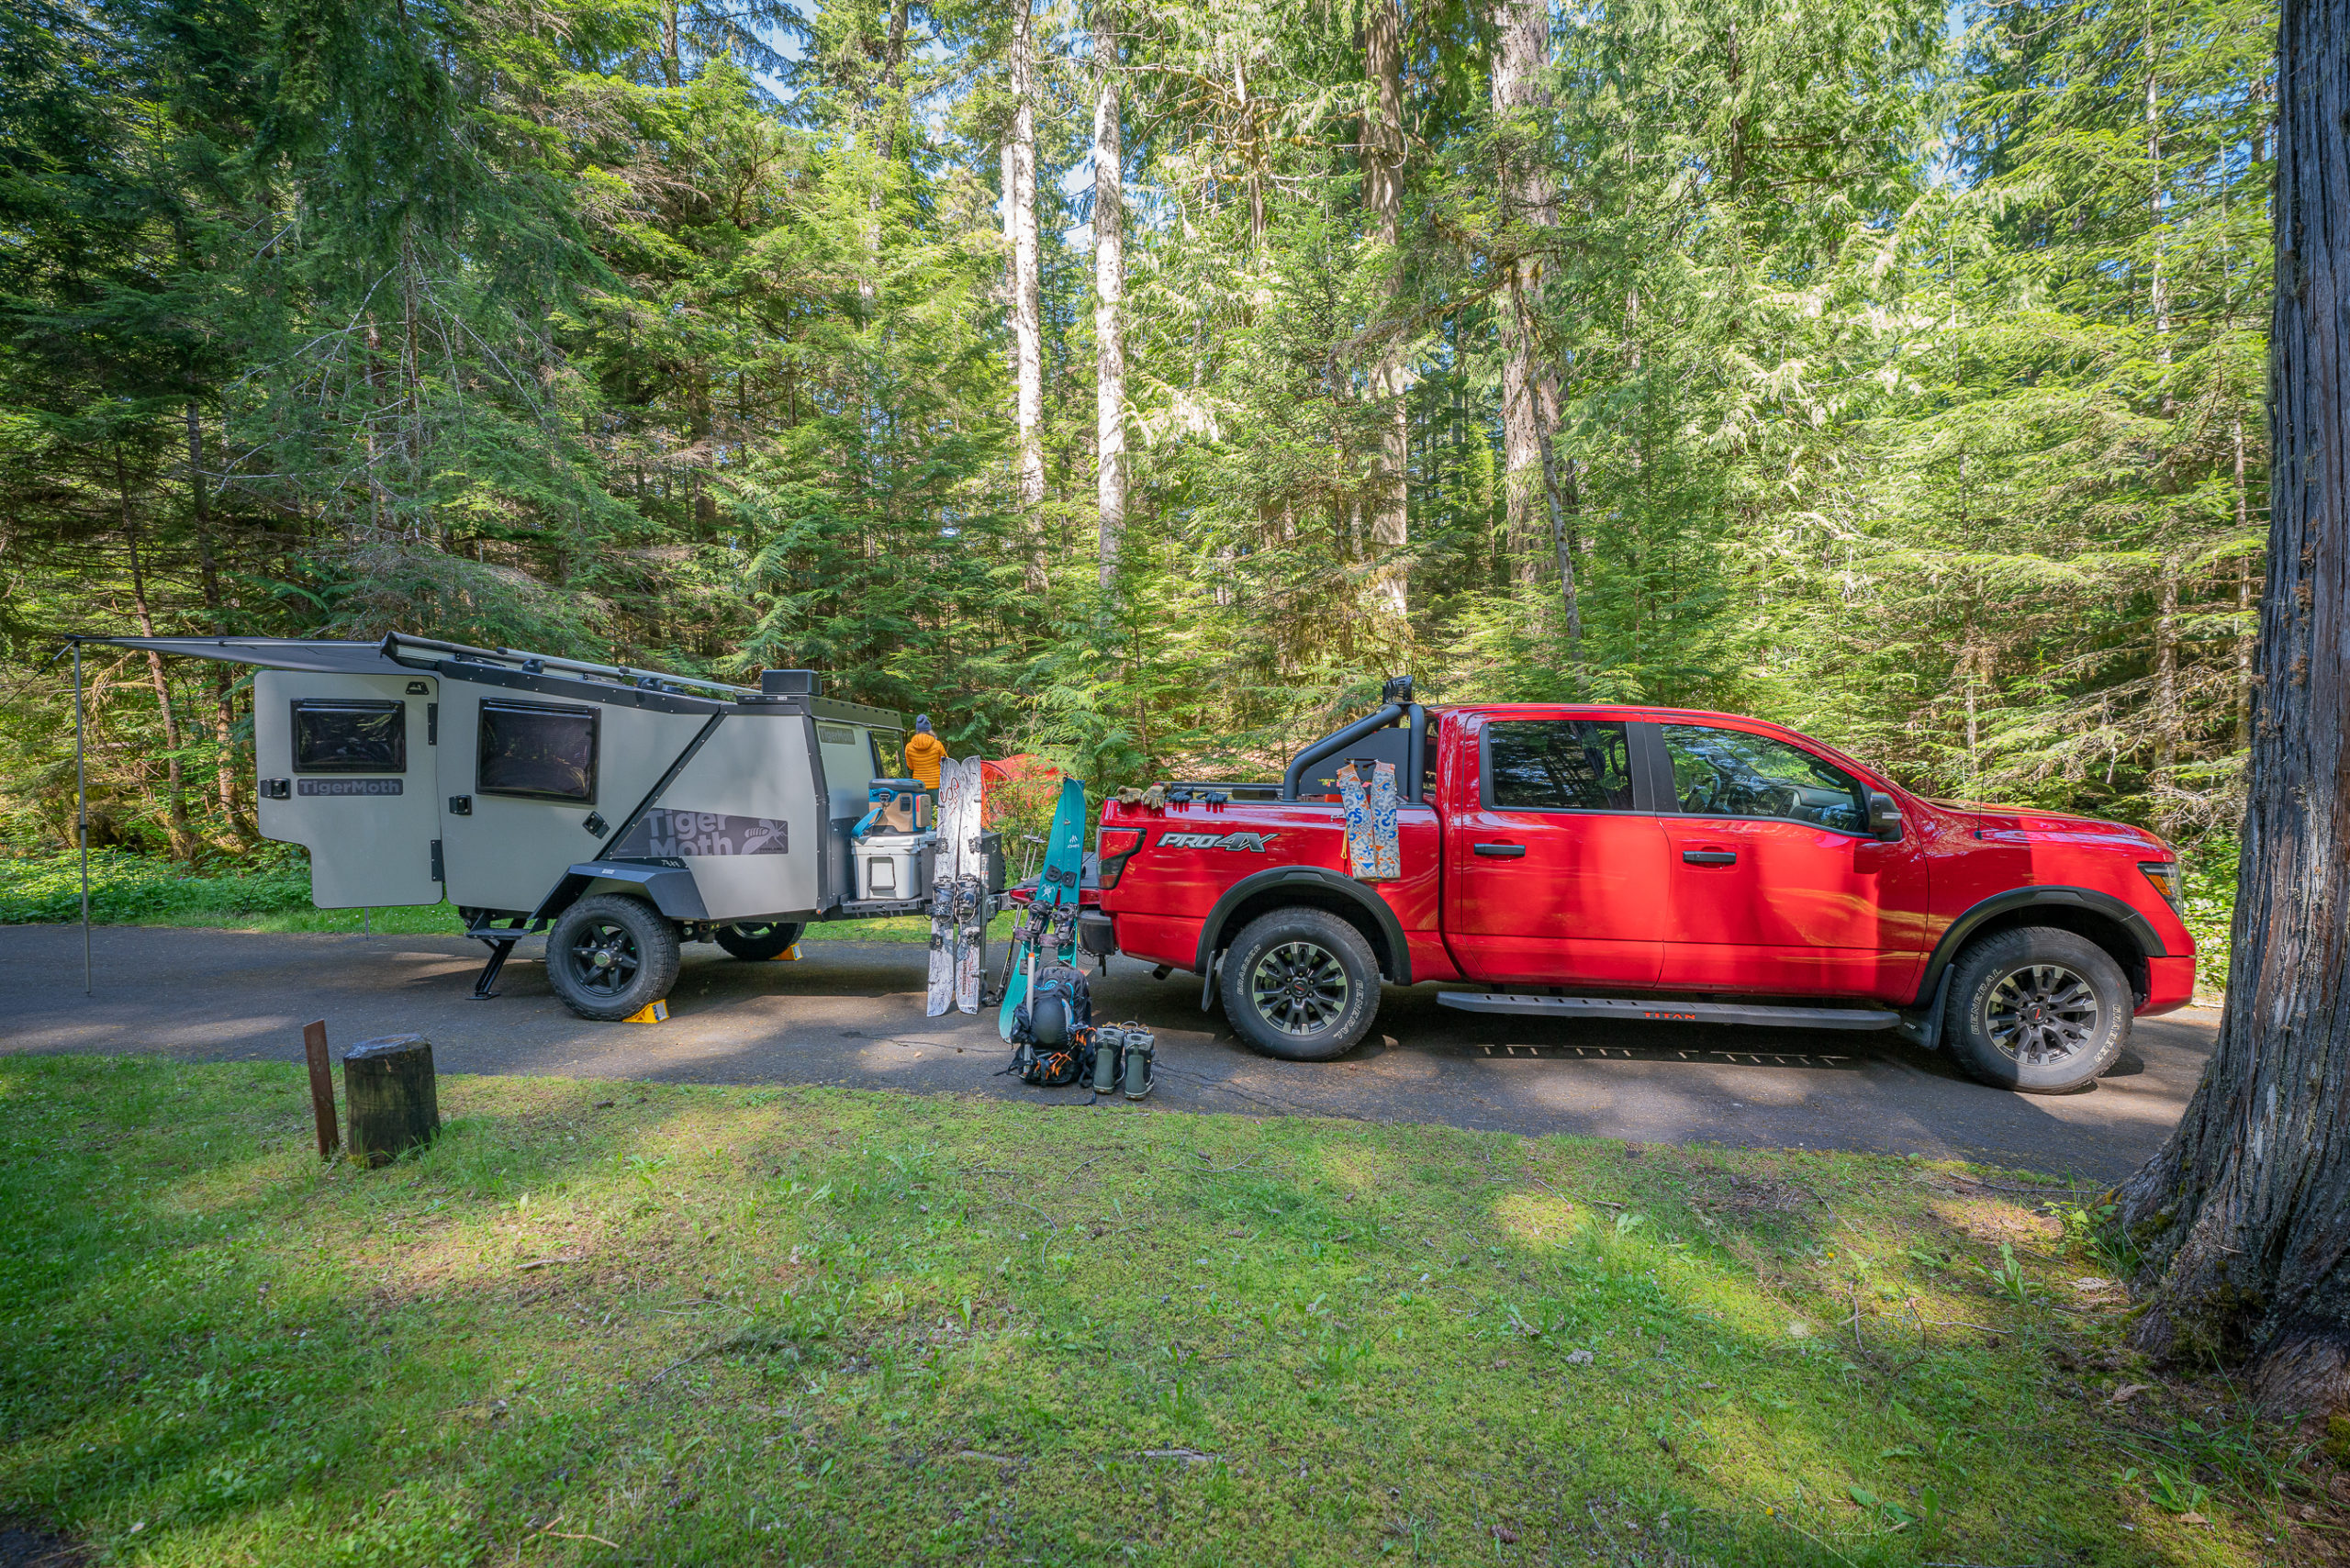 2021 Nissan Titan Pro-4X with trailer and gear